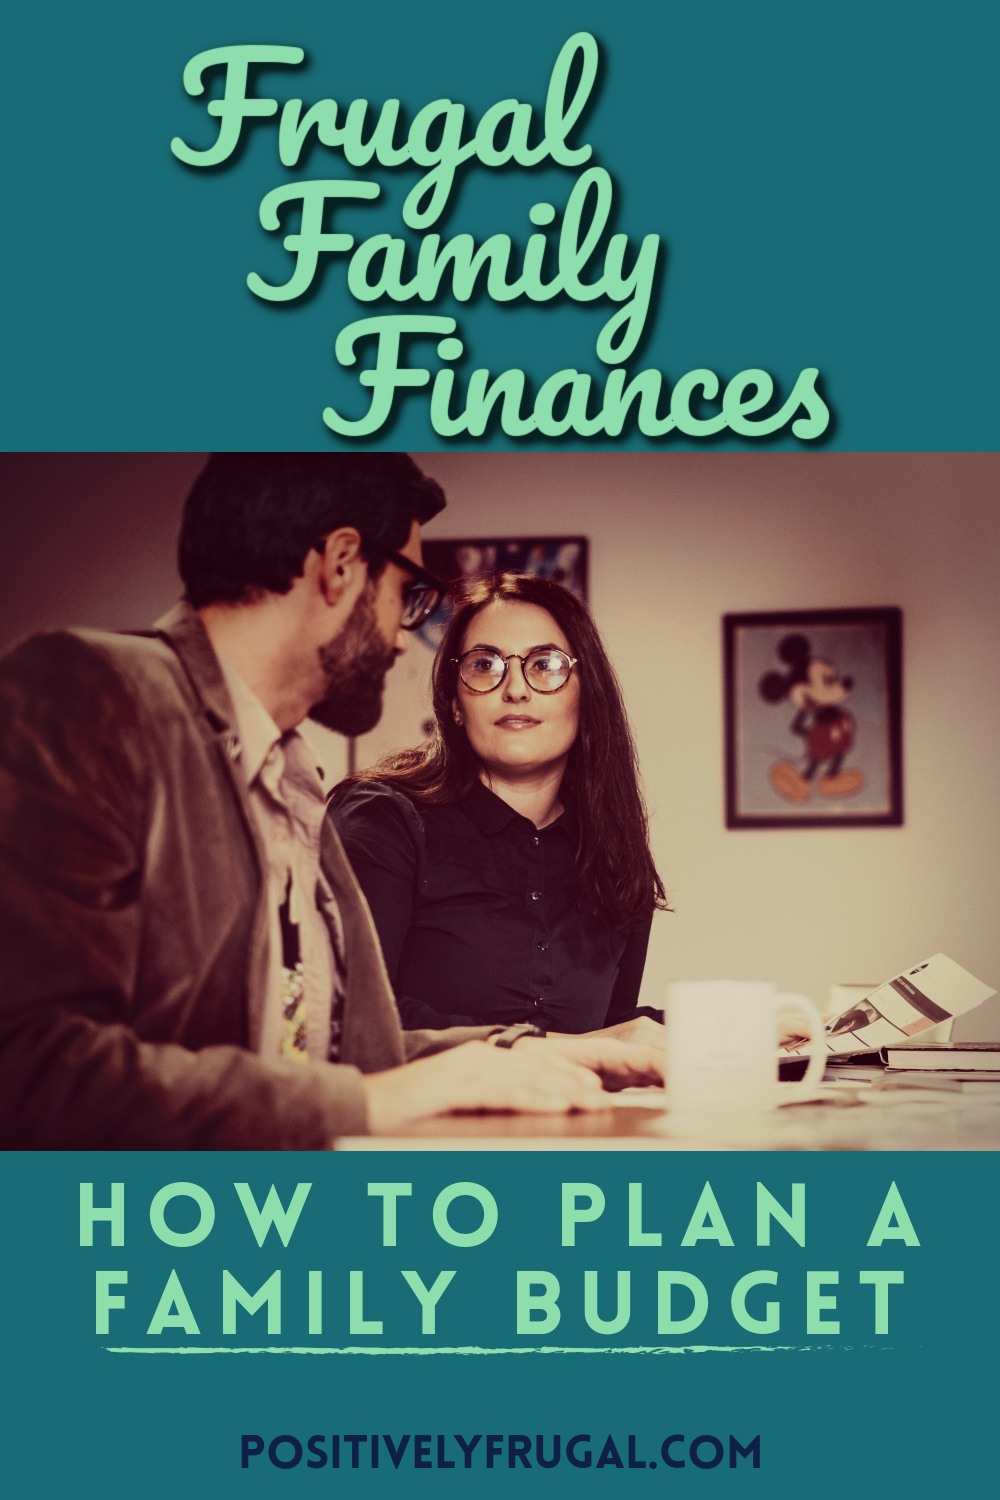 Frugal Family Finances How To Plan Family Budget by PositivelyFrugal.com